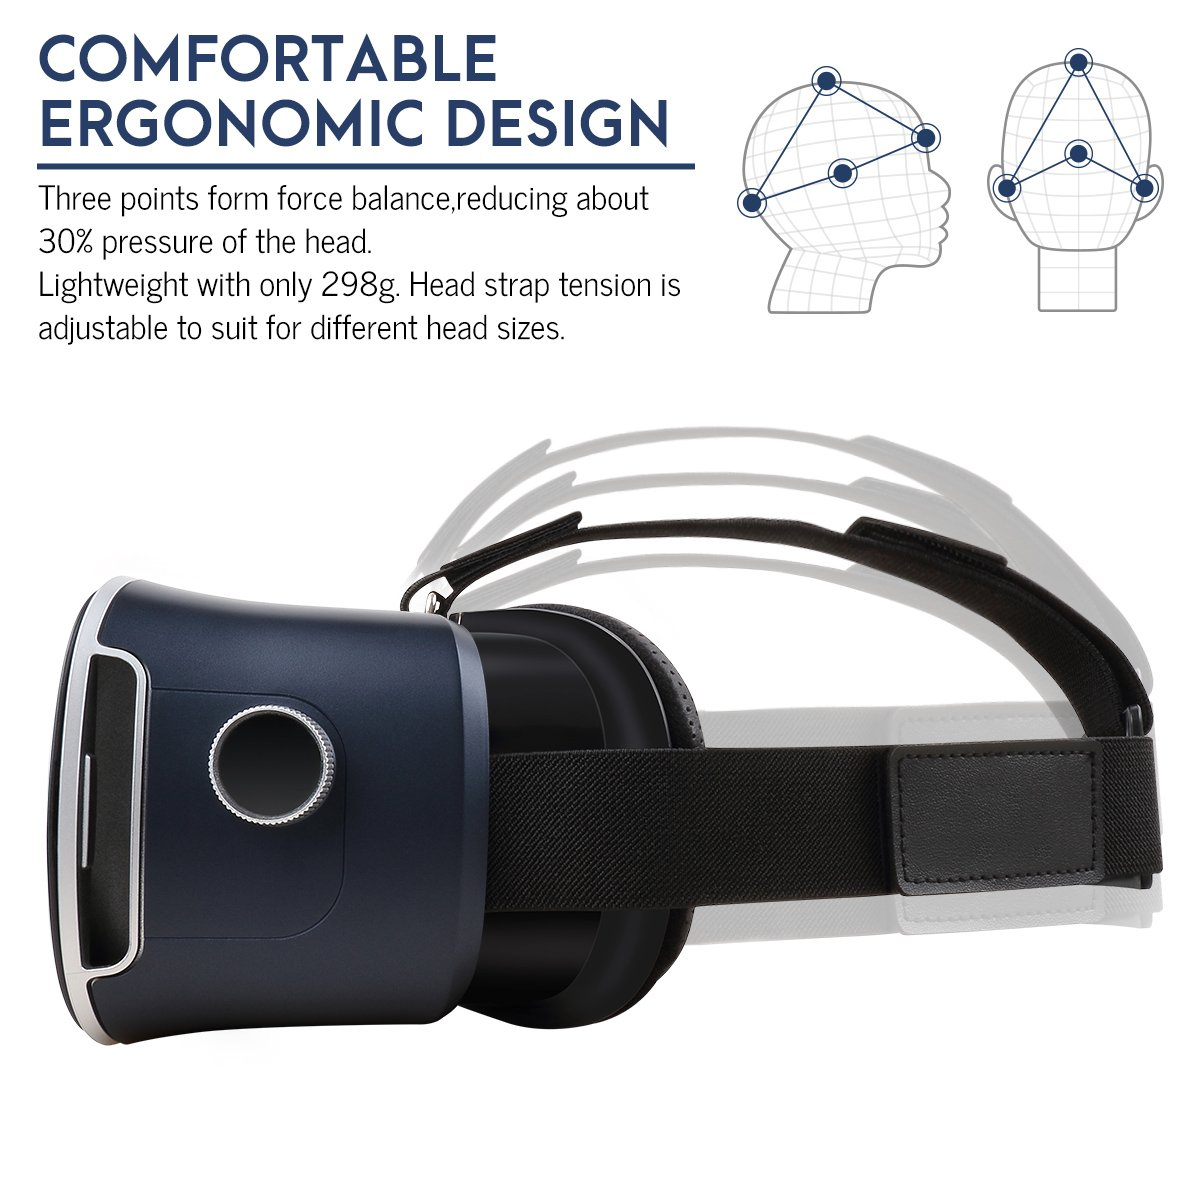 Pansonite 3D VR Glasses Virtual Reality Headset for Games & 3D Movies, Upgraded & Lightweight with Adjustable Pupil and Object Distance for IOS and Android Smartphone by Pansonite (Image #3)